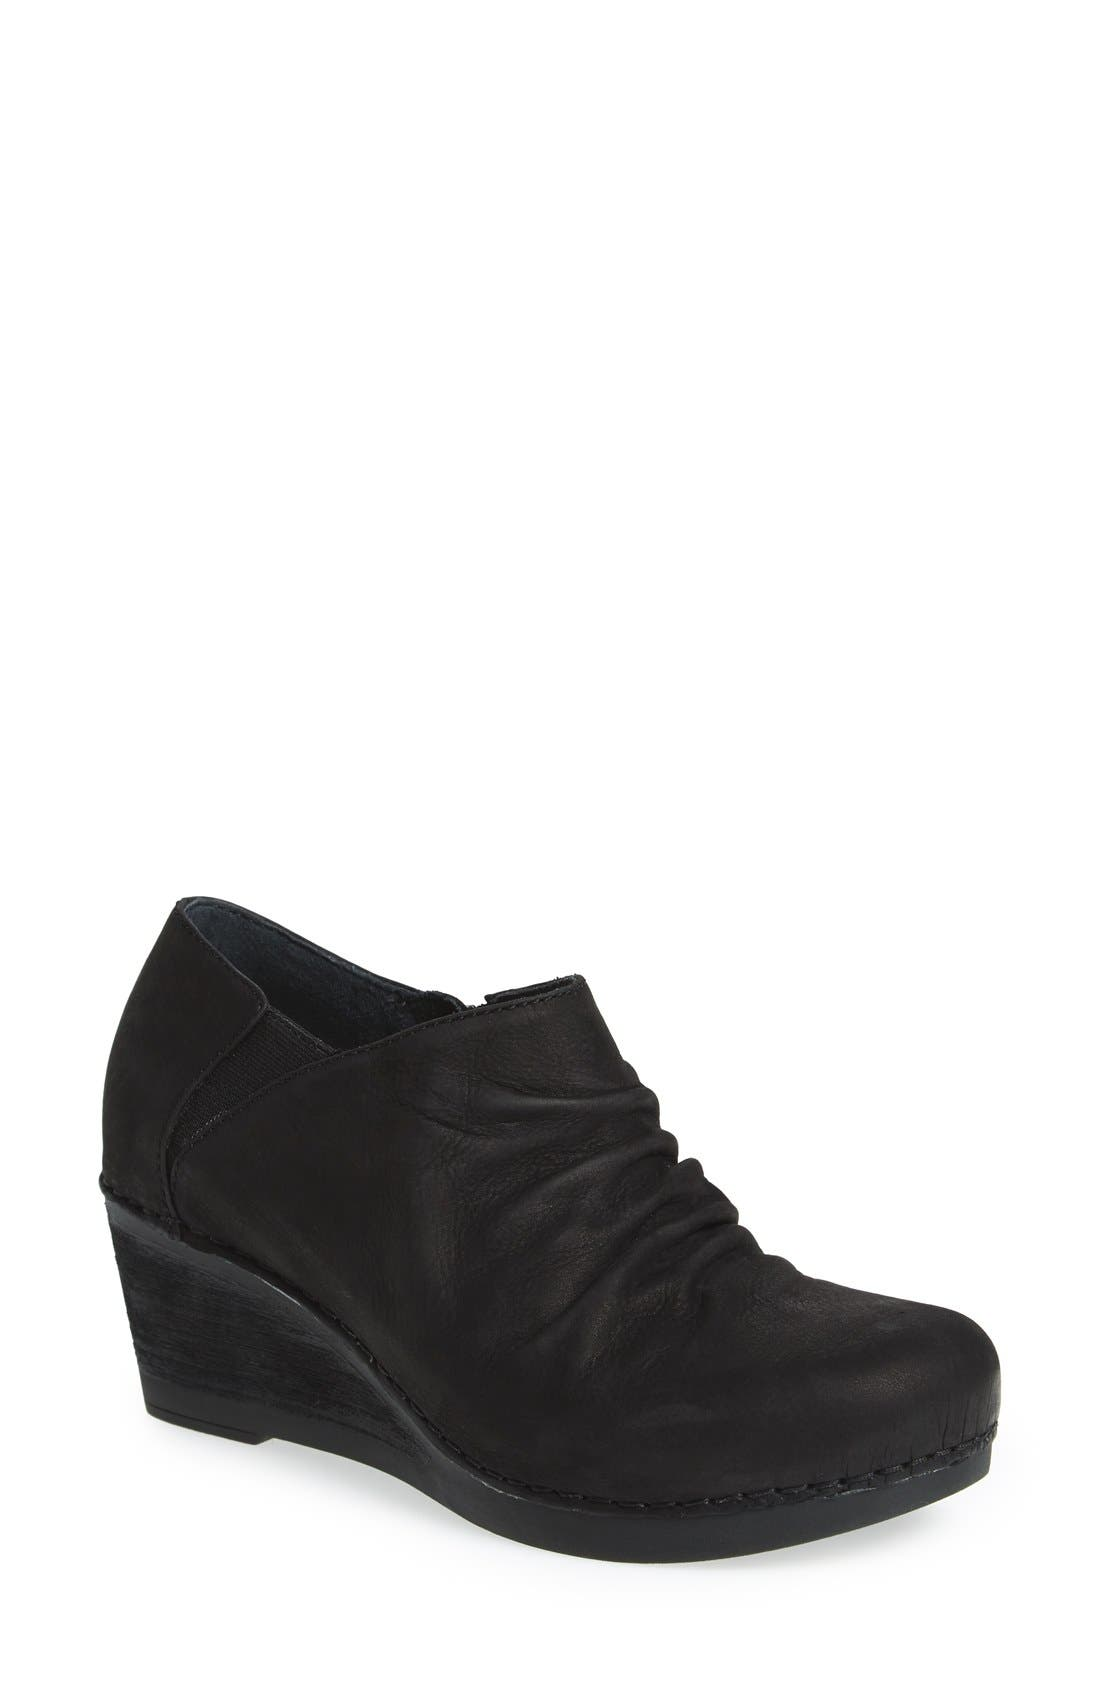 'Sheena' Slouchy Wedge Bootie,                         Main,                         color, 001